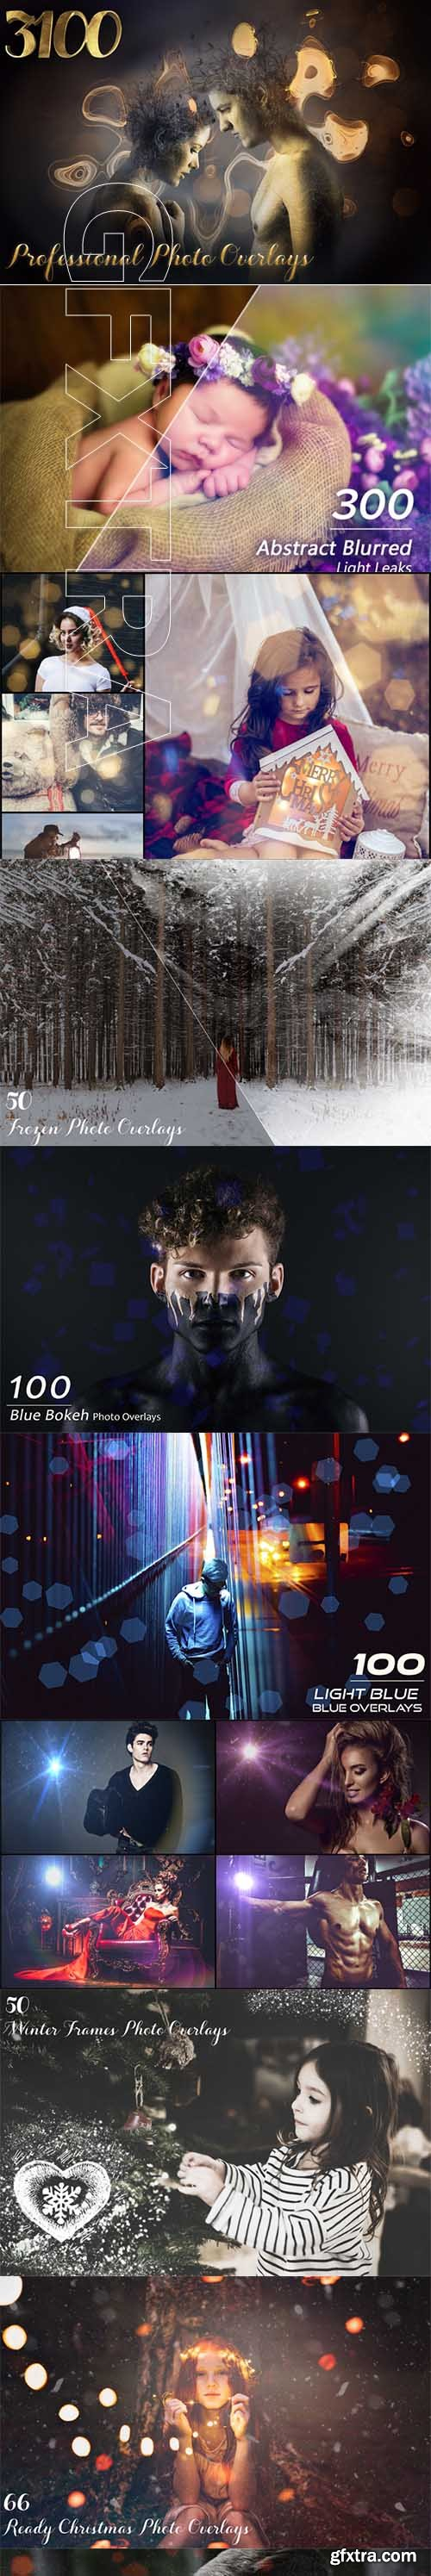 3108 Professional Photo Overlays